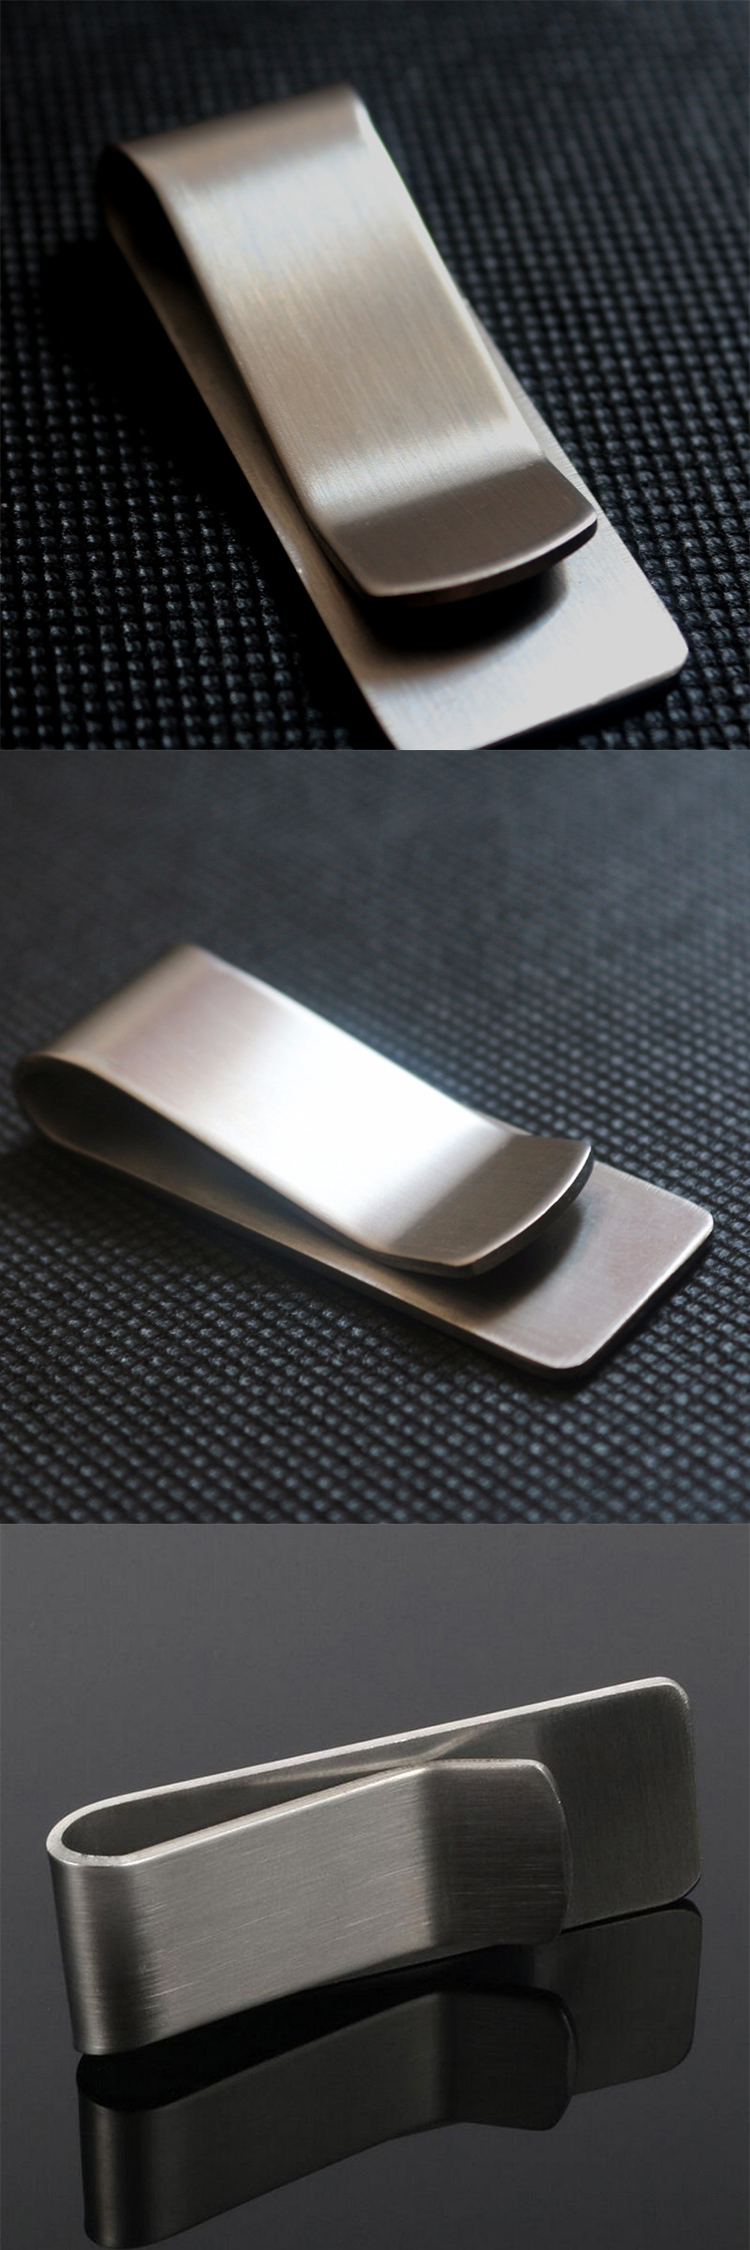 Wholesale unique cheap blank stainless steel money clip